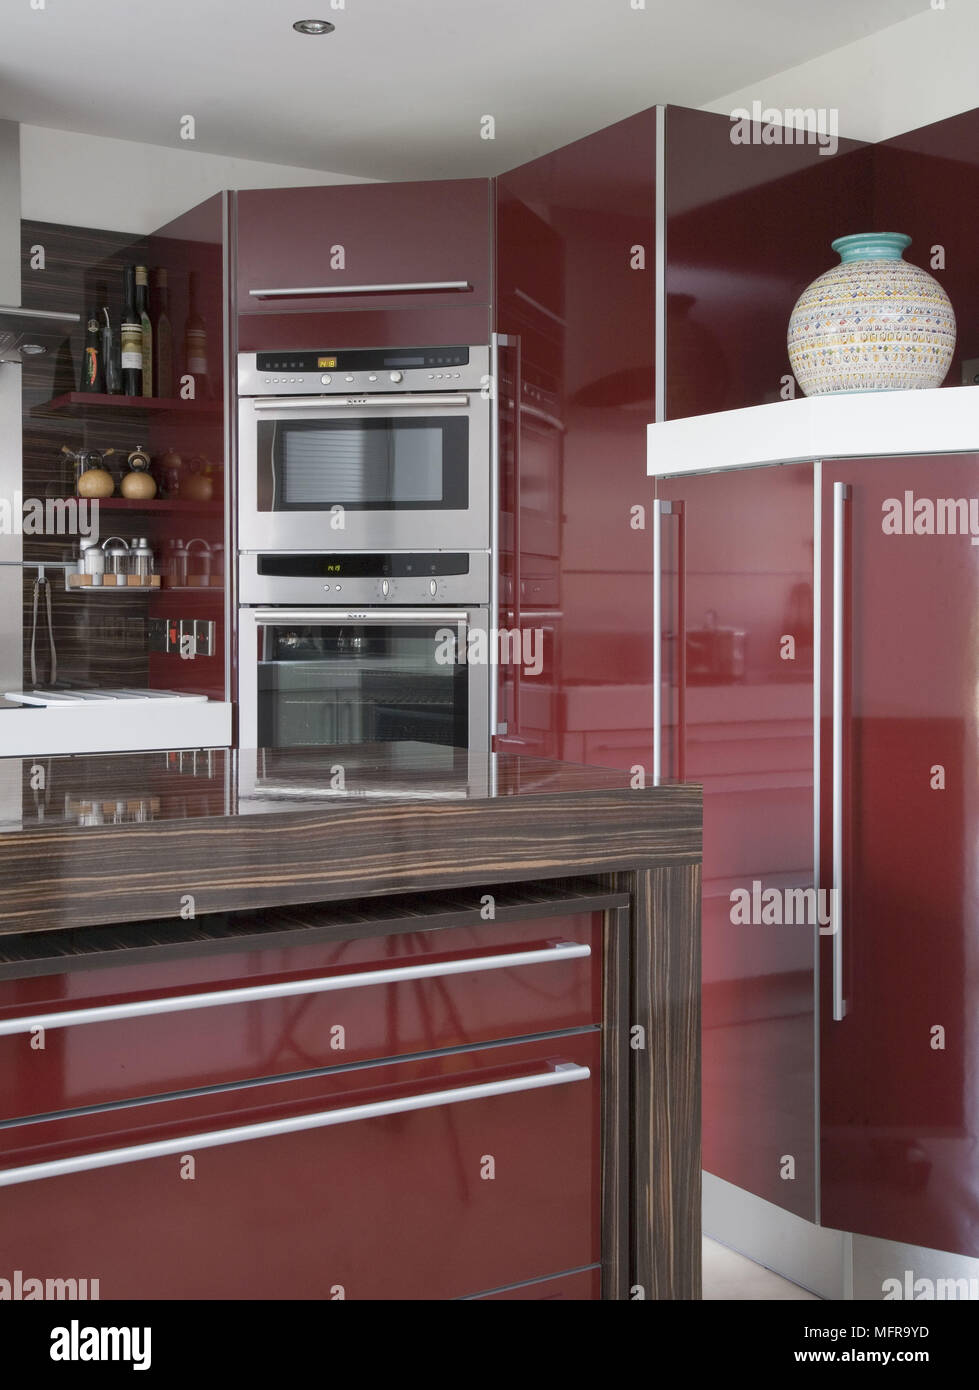 Modern Kitchen With Integral Oven Set In Red Units Stock Photo